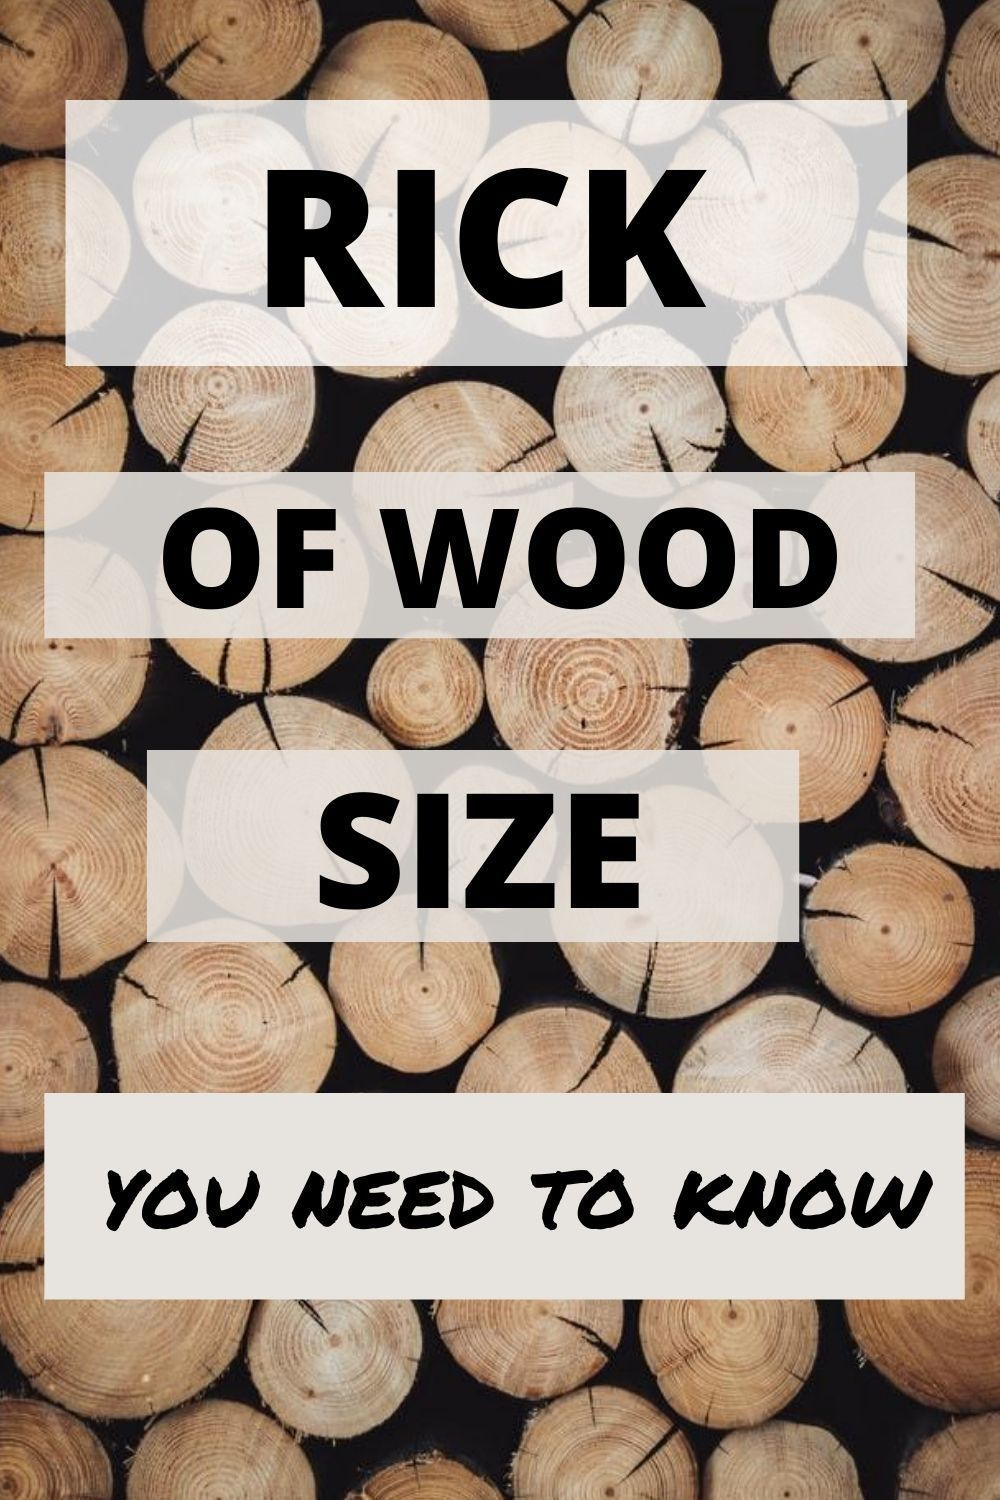 What Size Is A Rick Of Wood Detailed Guide In 2020 Wood Beginner Woodworking Projects Wood Working For Beginners